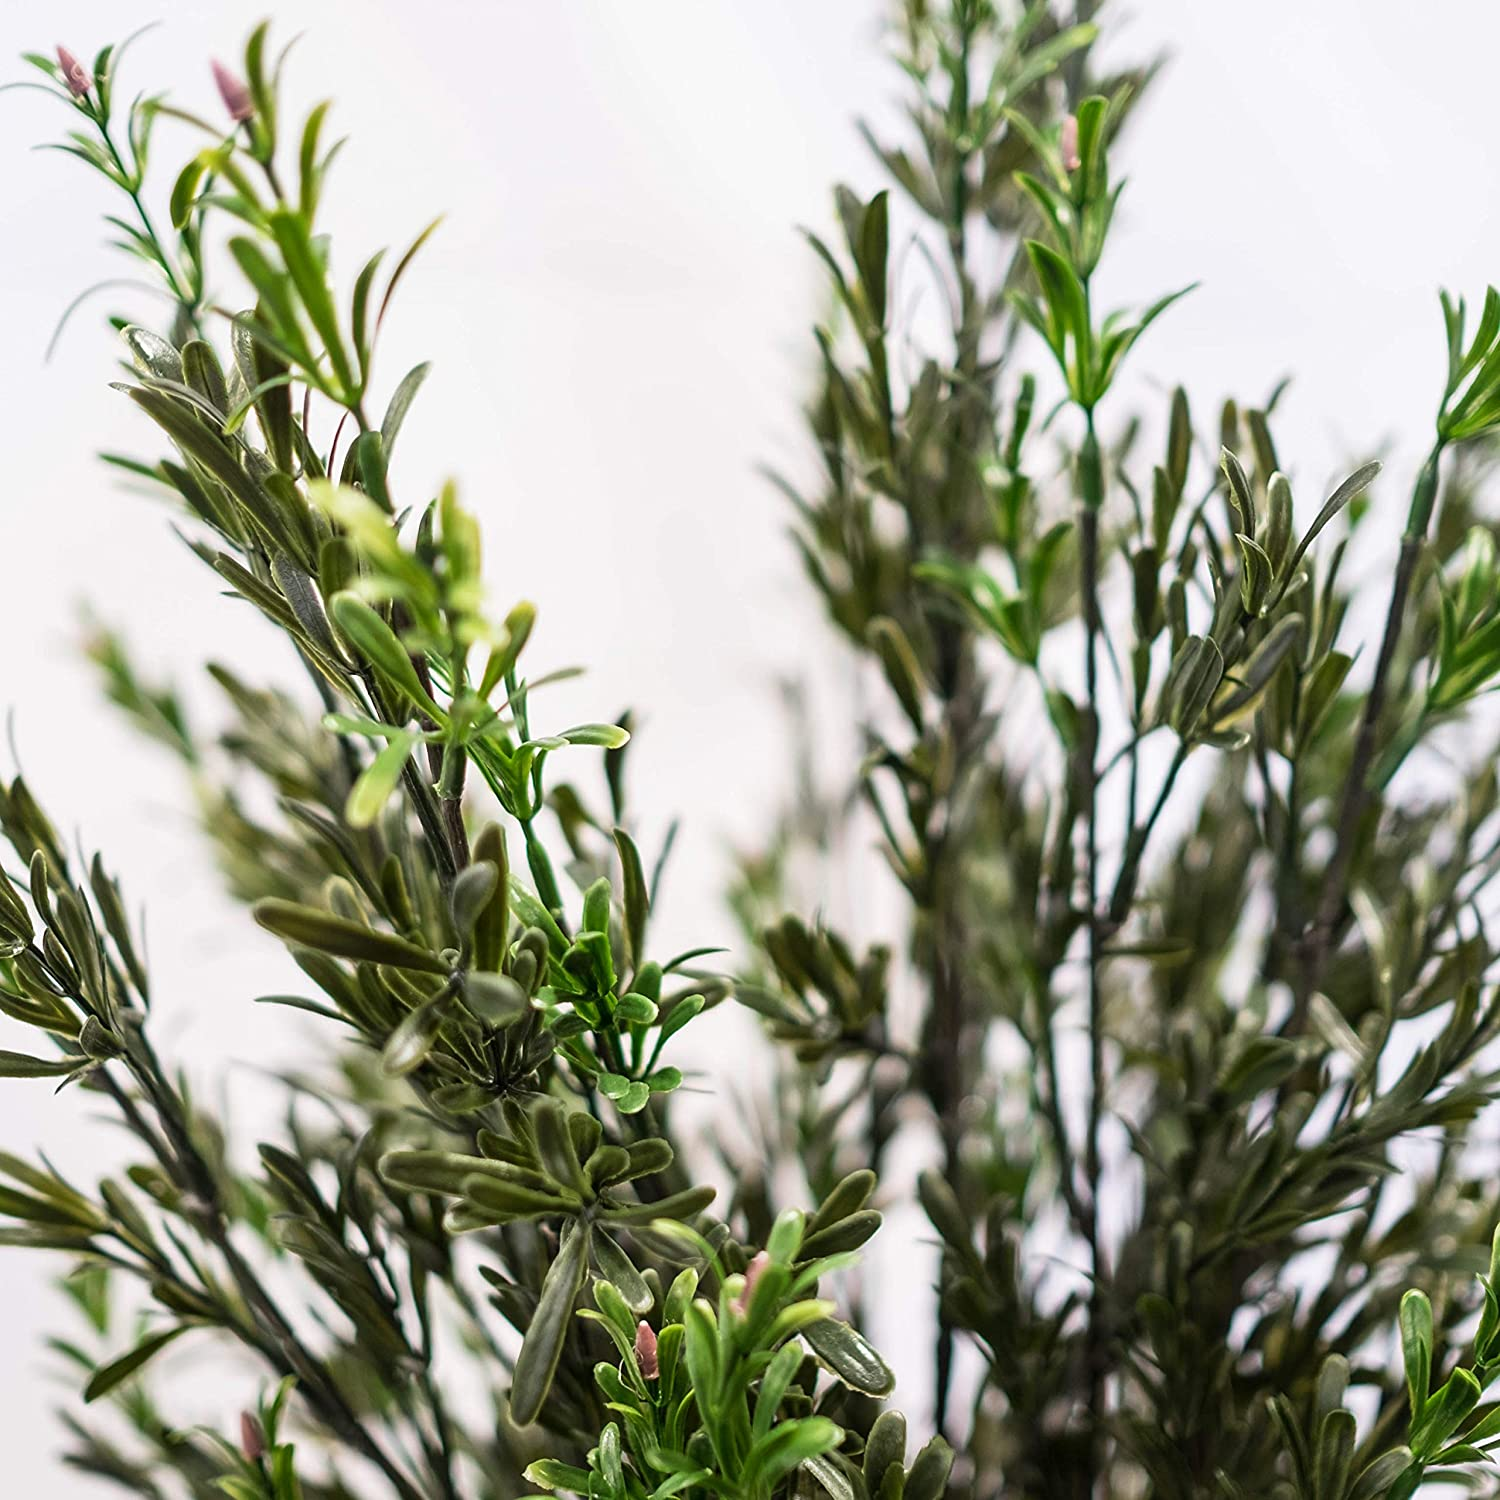 Silk Plant Decor and More Outdoor Artificial UV Protected Rosemary Bush